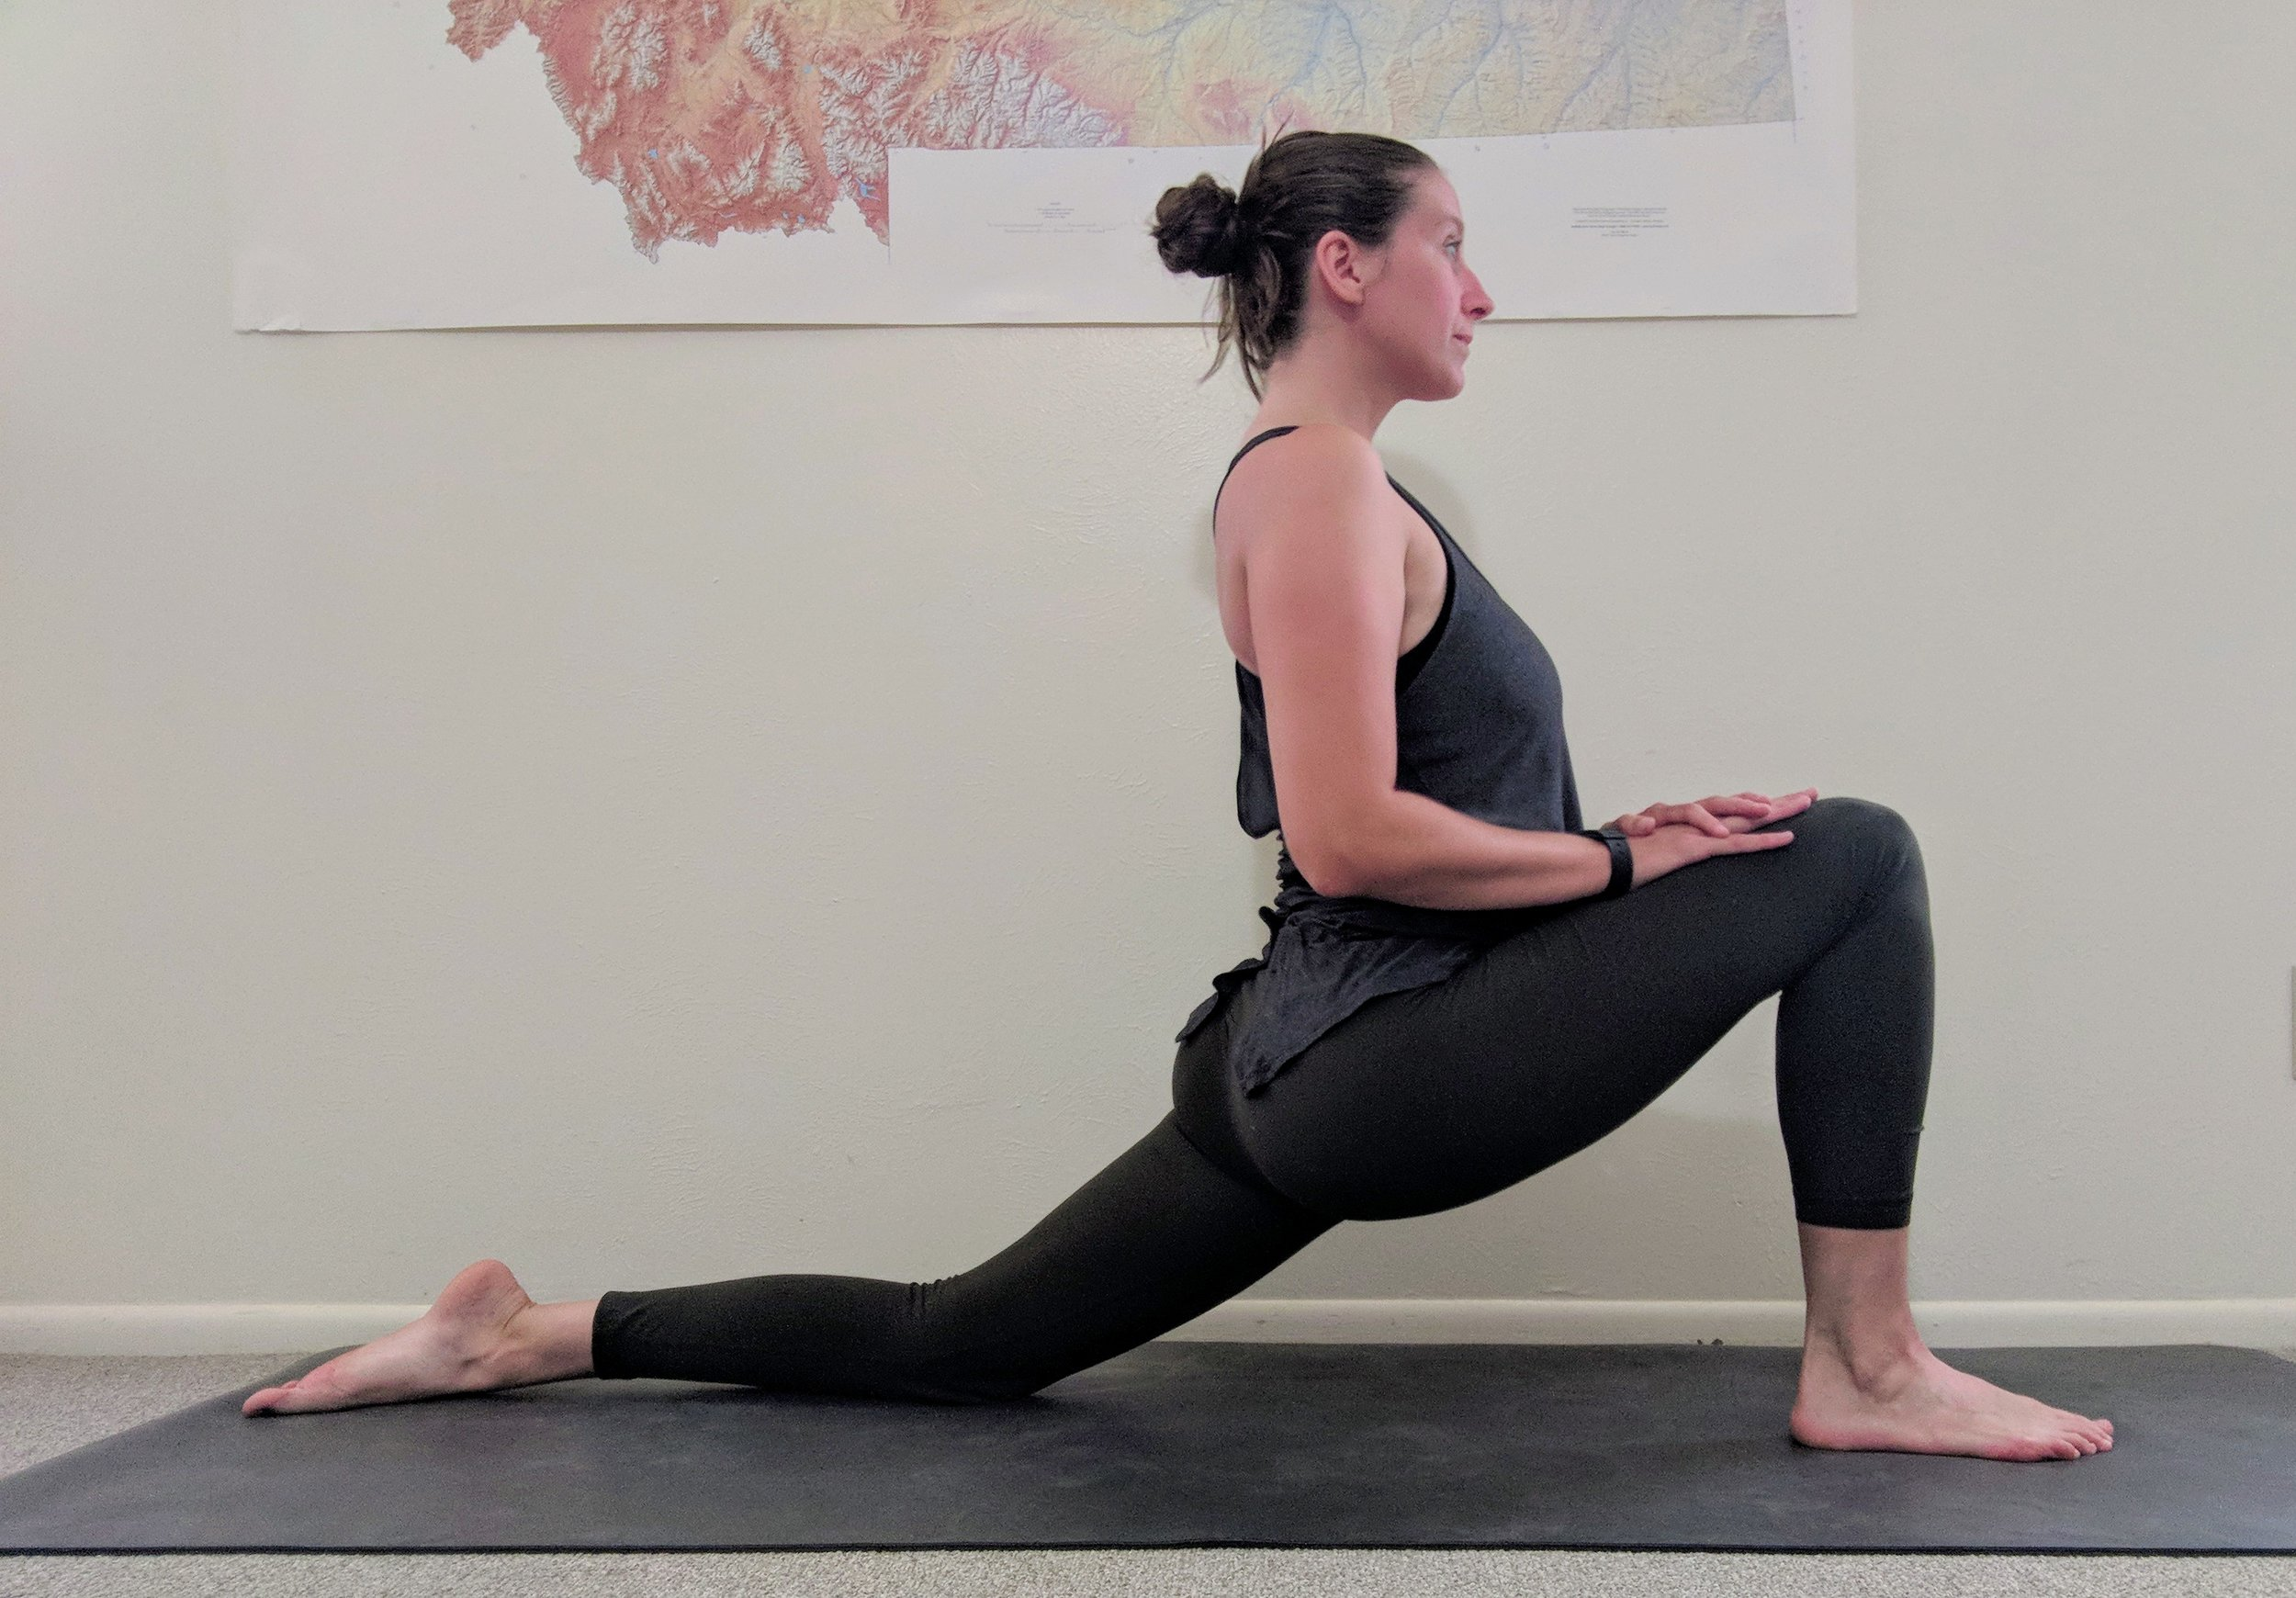 low lunge - From forward fold, plant your hands into the mat and step your right foot long behind you, lower your right knee. Your back toes can be either tucked or untuckedAdjust your left foot so that your knee is stacked above your ankleLengthen your spine and press down into your hipsMODIFICATION: Use two blocks under your palms to lengthen your spine if you can't reach the groundMODIFICATION: If you have knee pain, fold a blanket under your back knee to lessen the impact